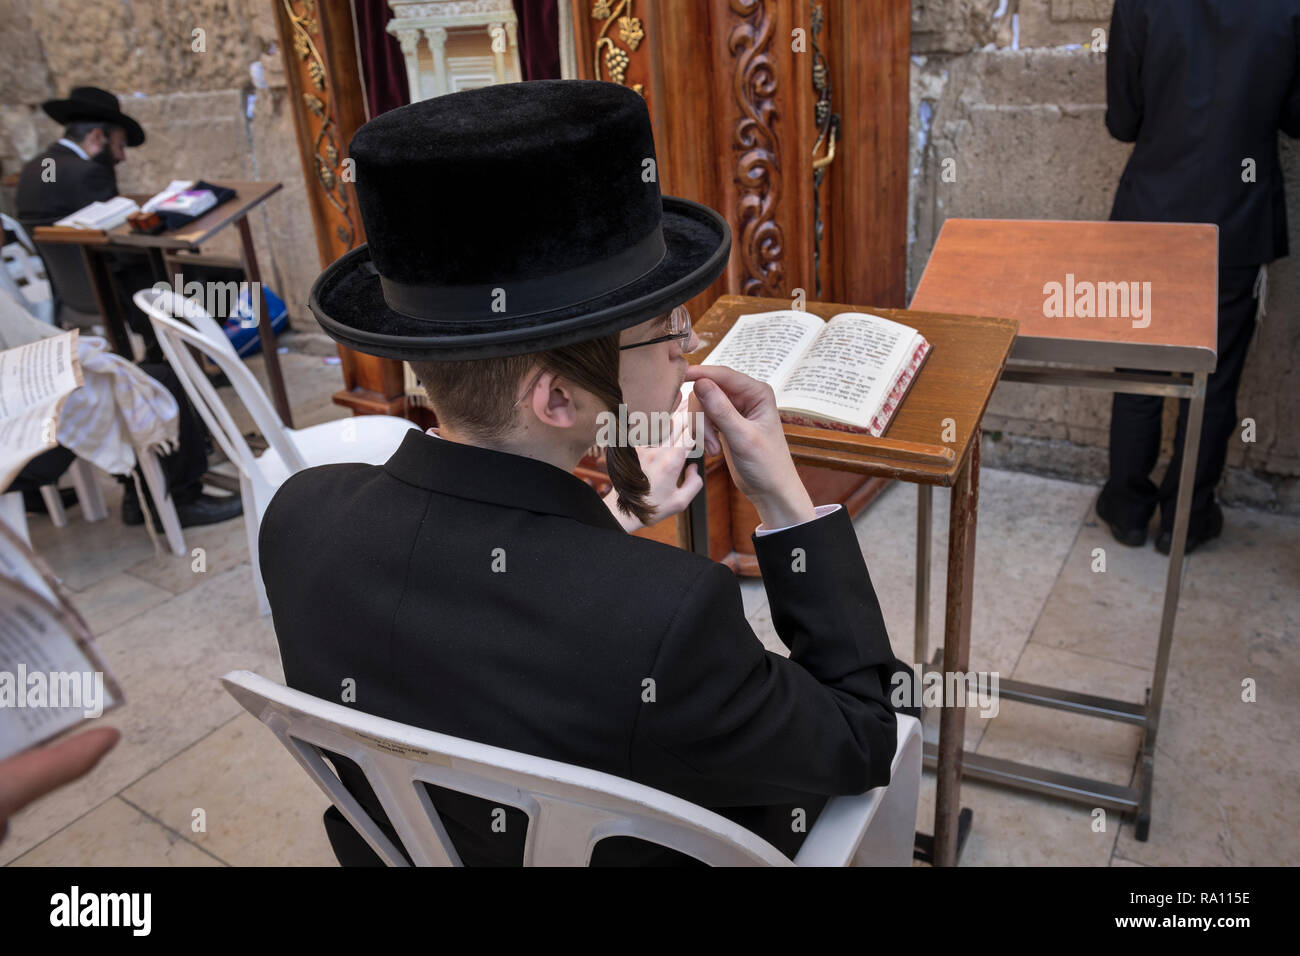 A young Orthodox Jew praying at Western Wall in Jerusalem. Israel - Stock Image